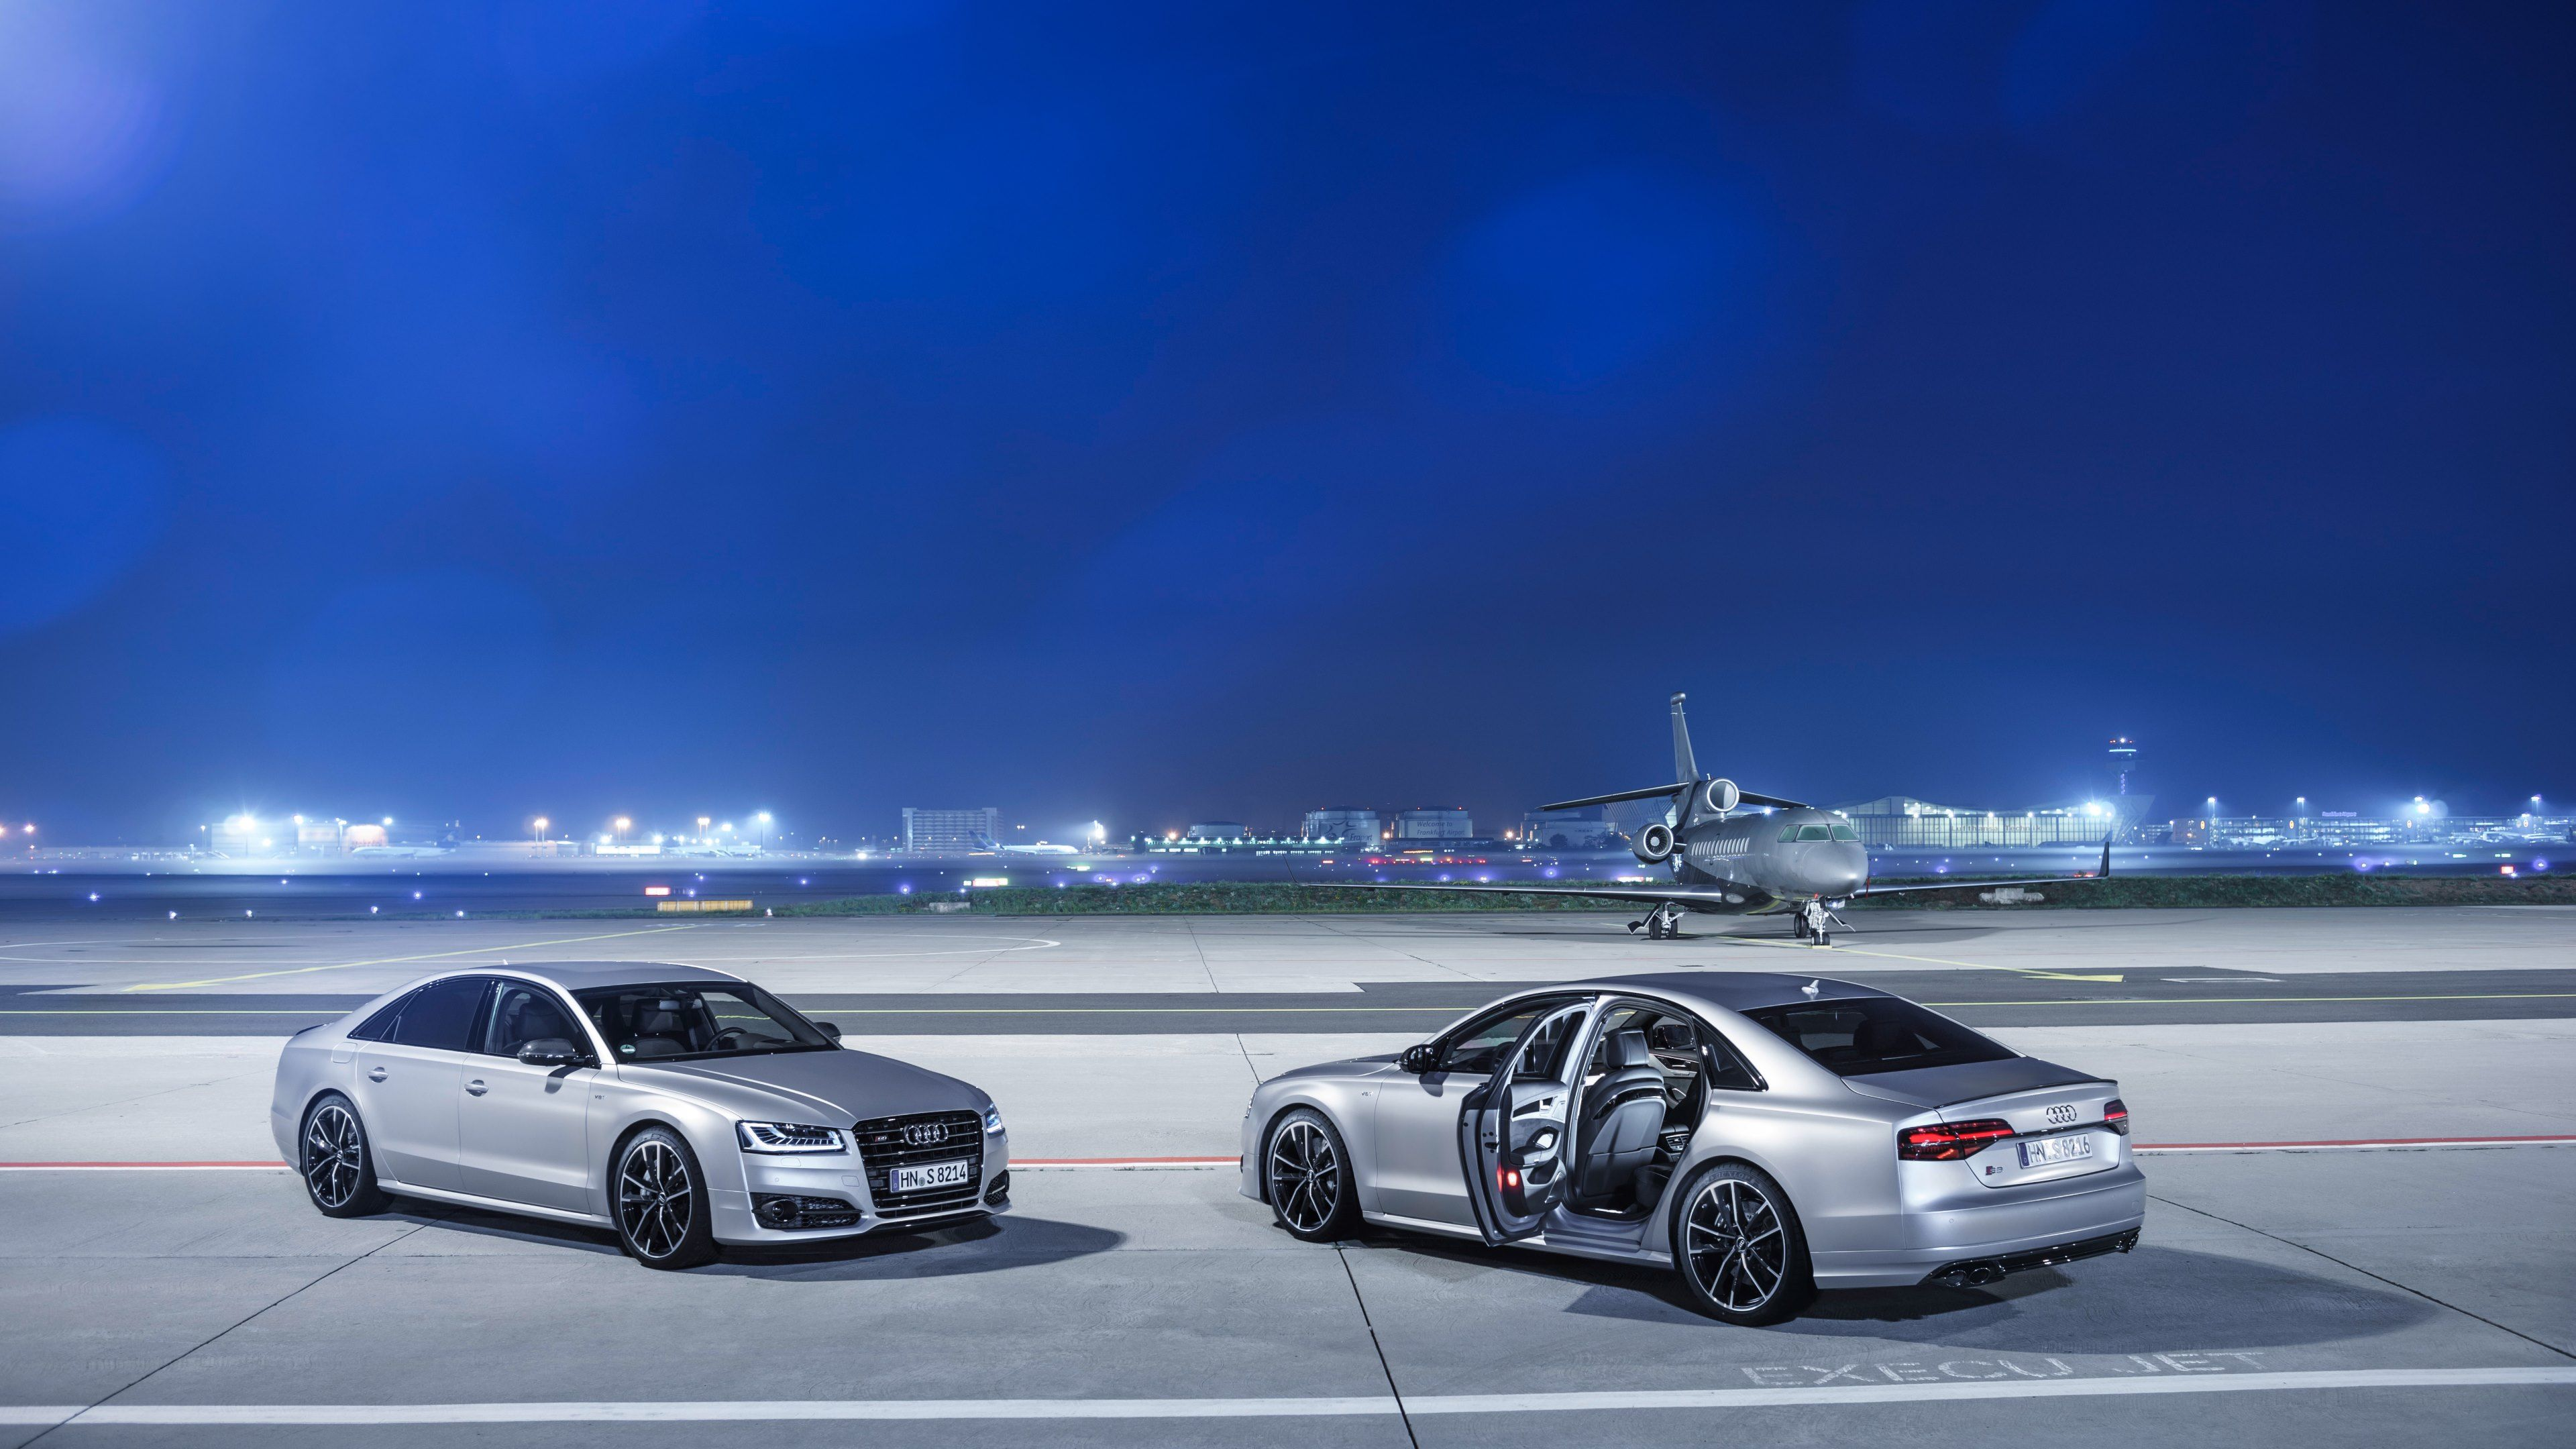 audi s8 wallpapers · 4k hd desktop backgrounds phone images | epic